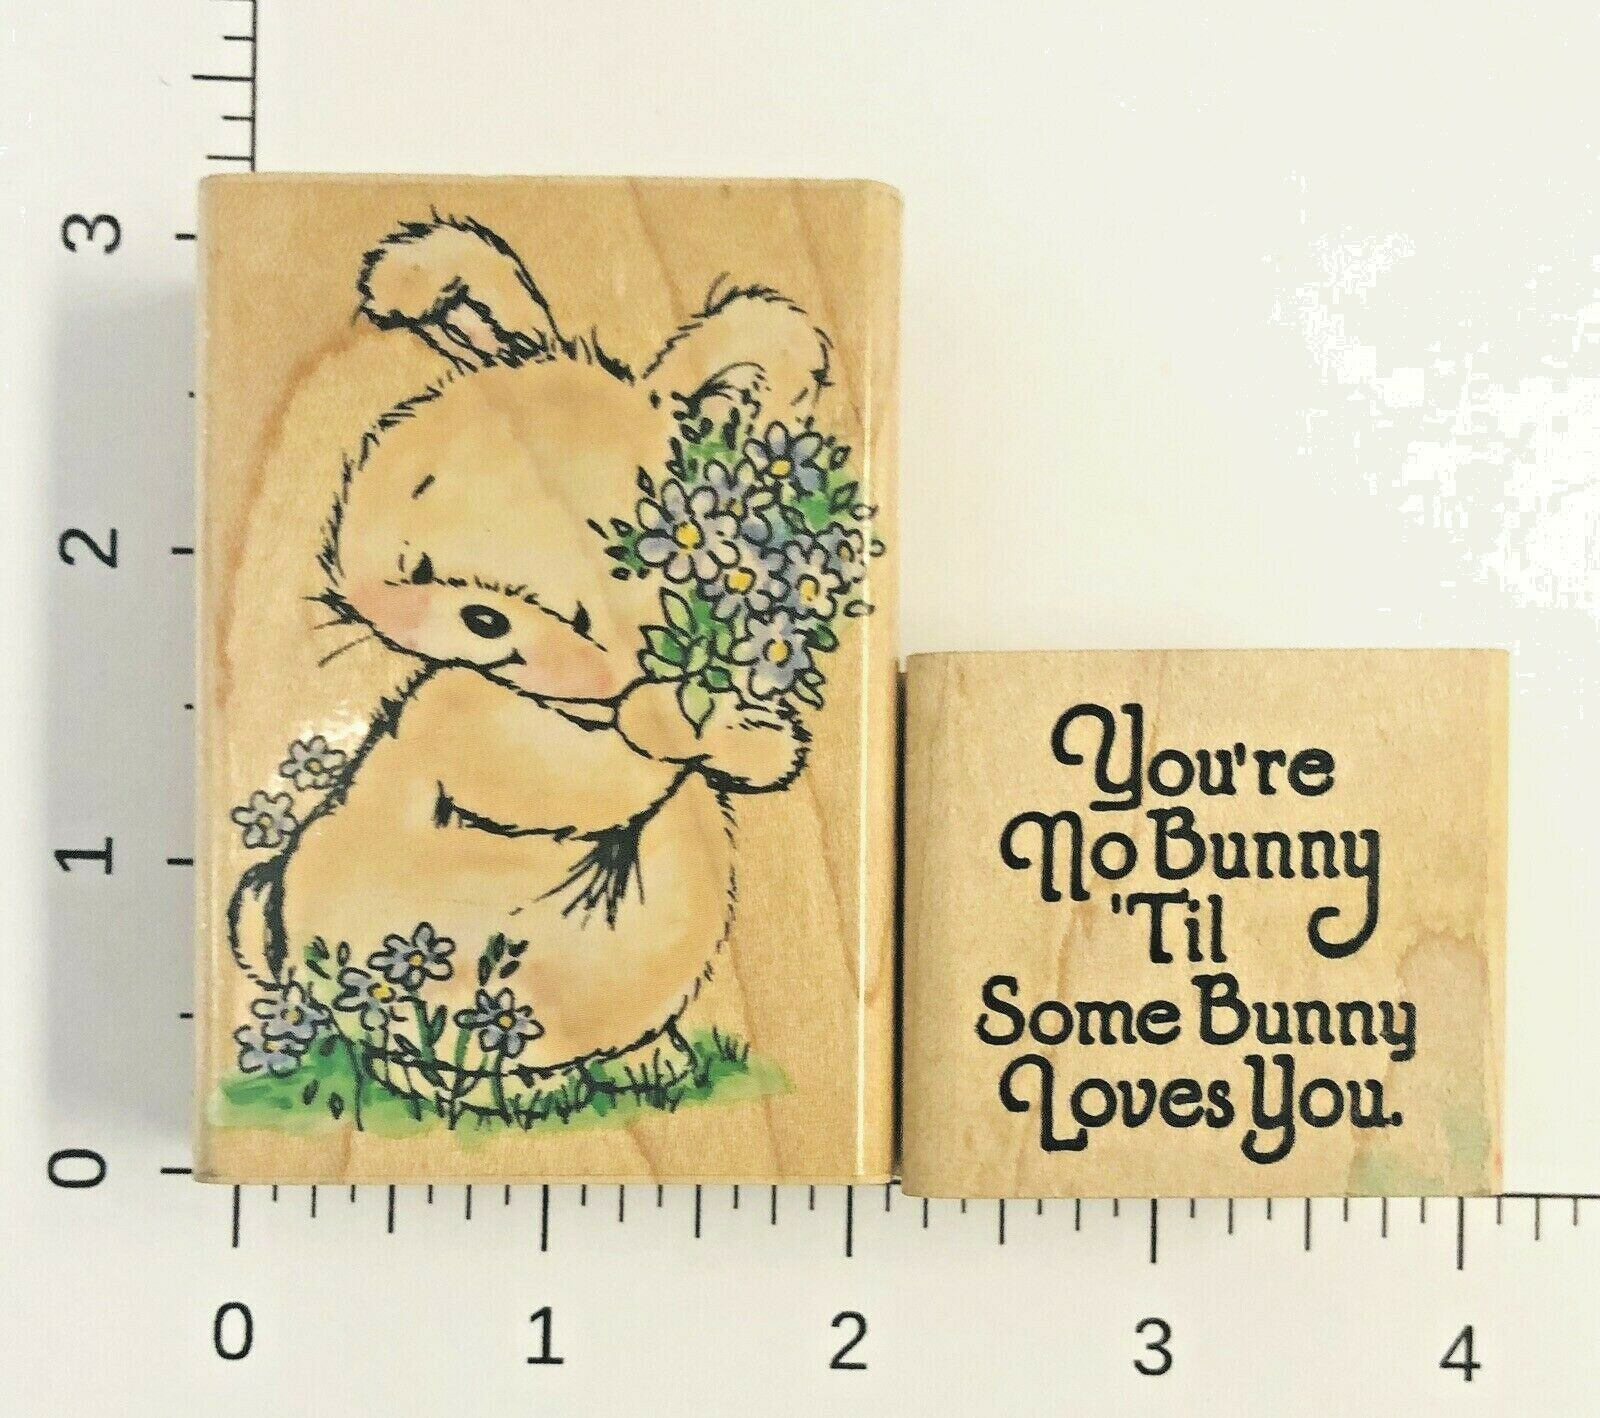 Bunny I Love You A Whole Bunch Stamp Used Vintage Rubber Stamp